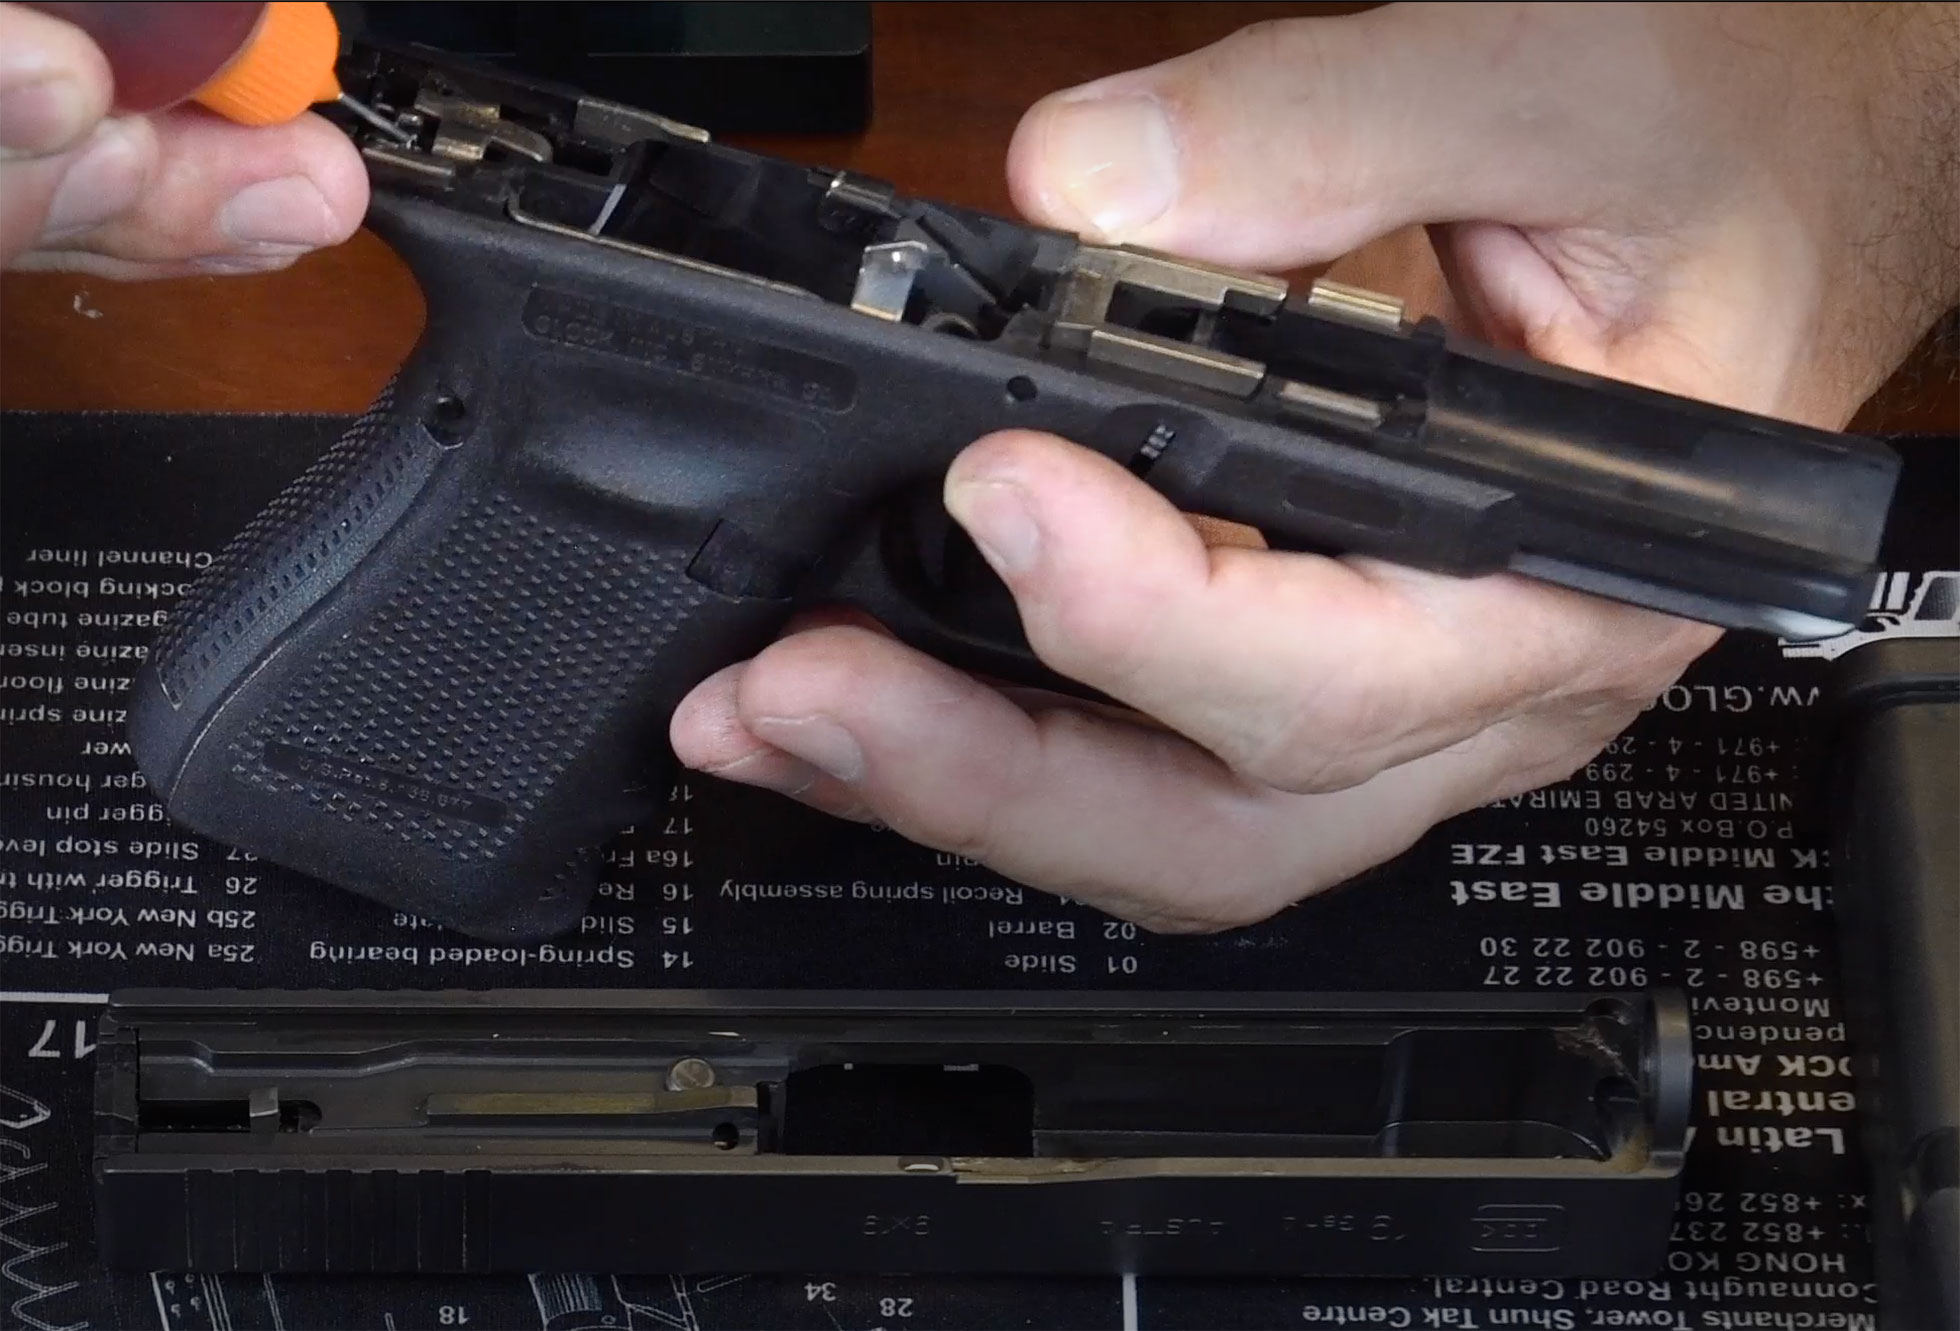 How To Clean A Glock 19 - Complete Disassembly Guide & Video